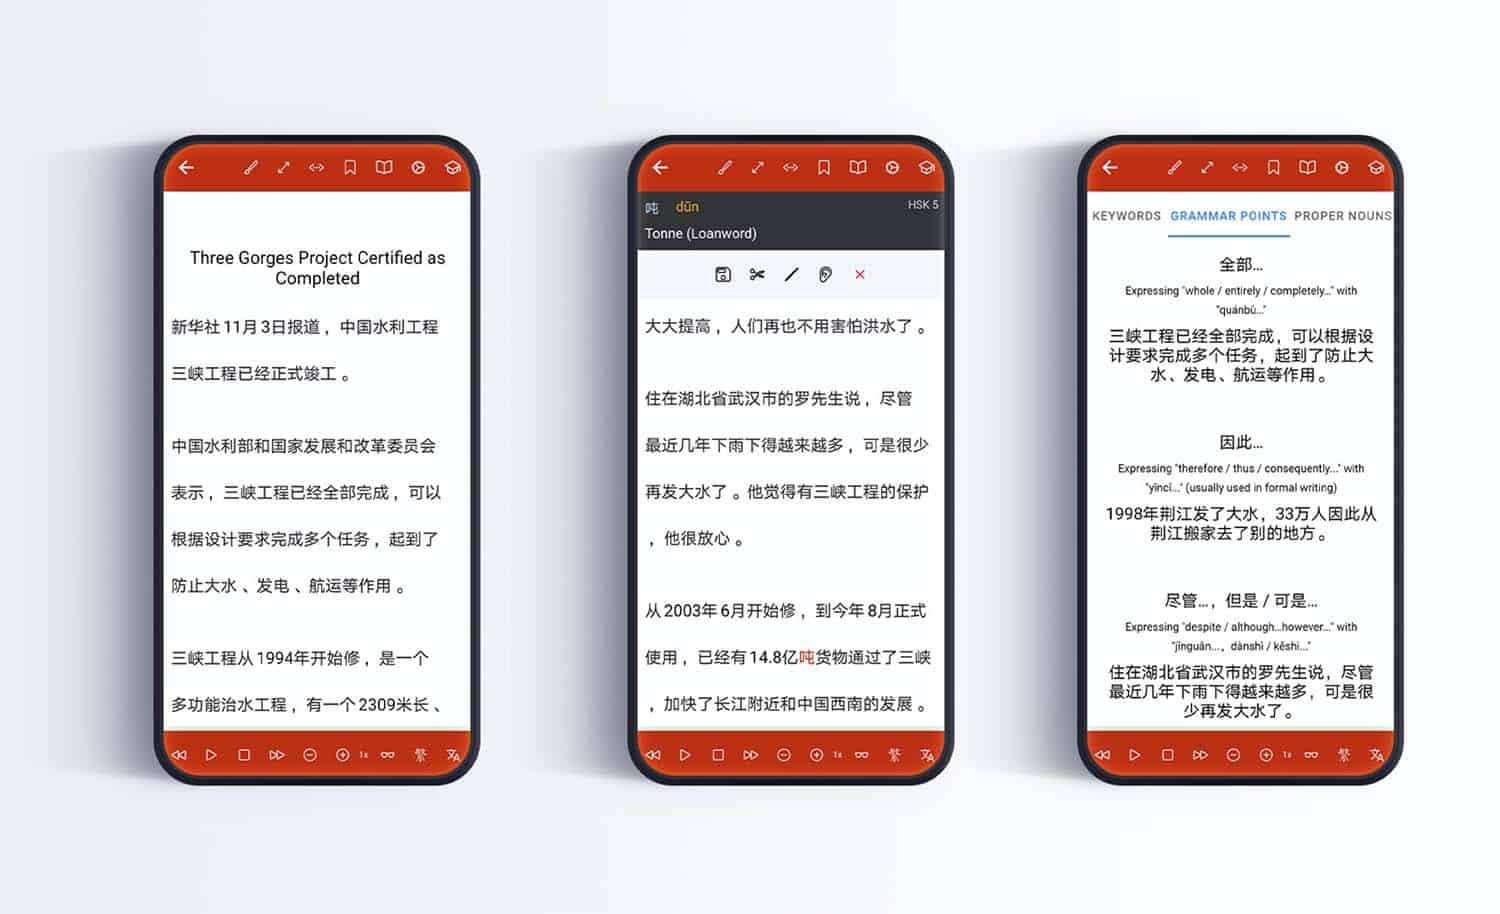 The Chairman's Bao app review